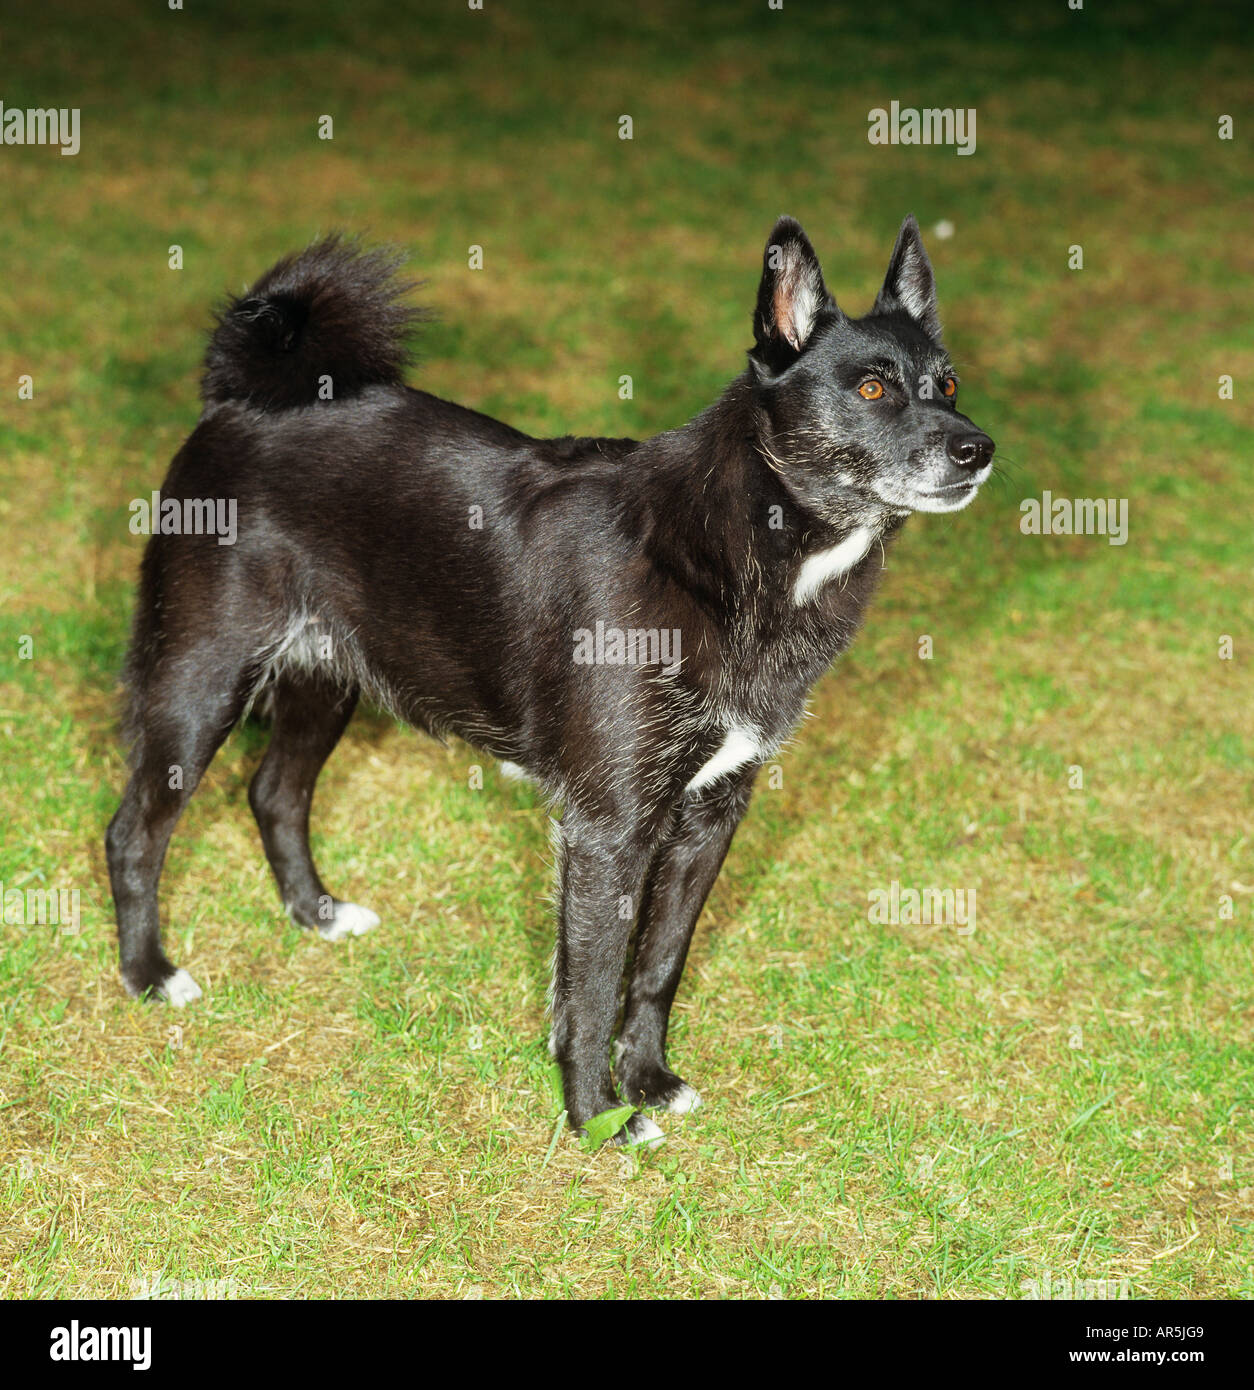 Norwegian Buhund Adult Dog Standing On Grass Stock Photo Alamy